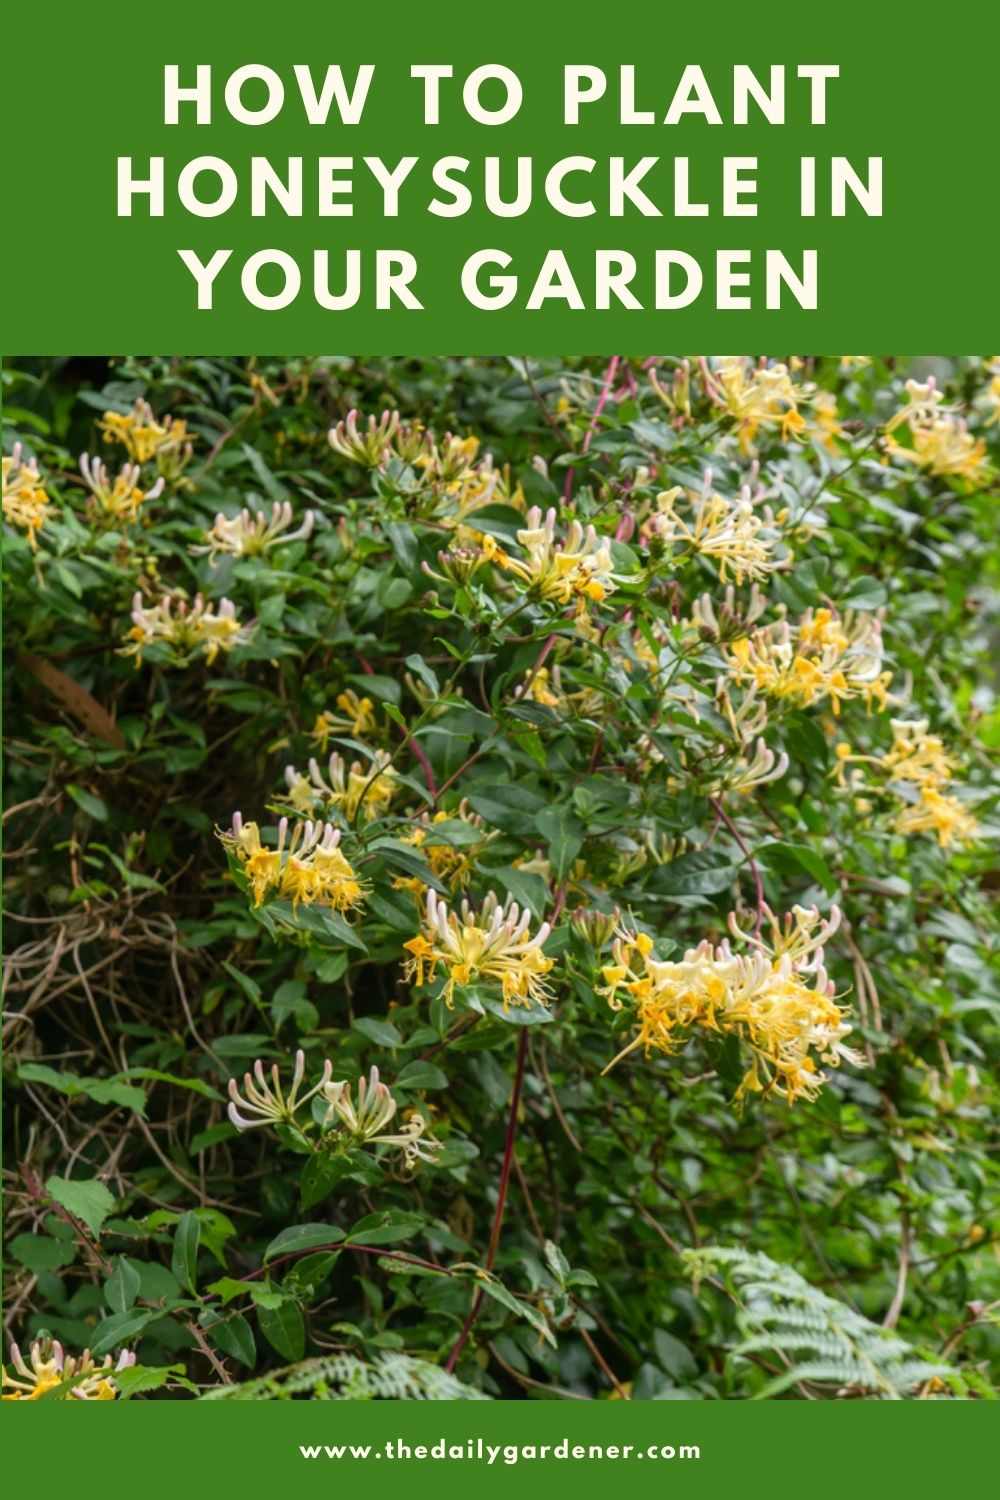 How to Plant Honeysuckle in Your Garden (Tricks to Care!) 1